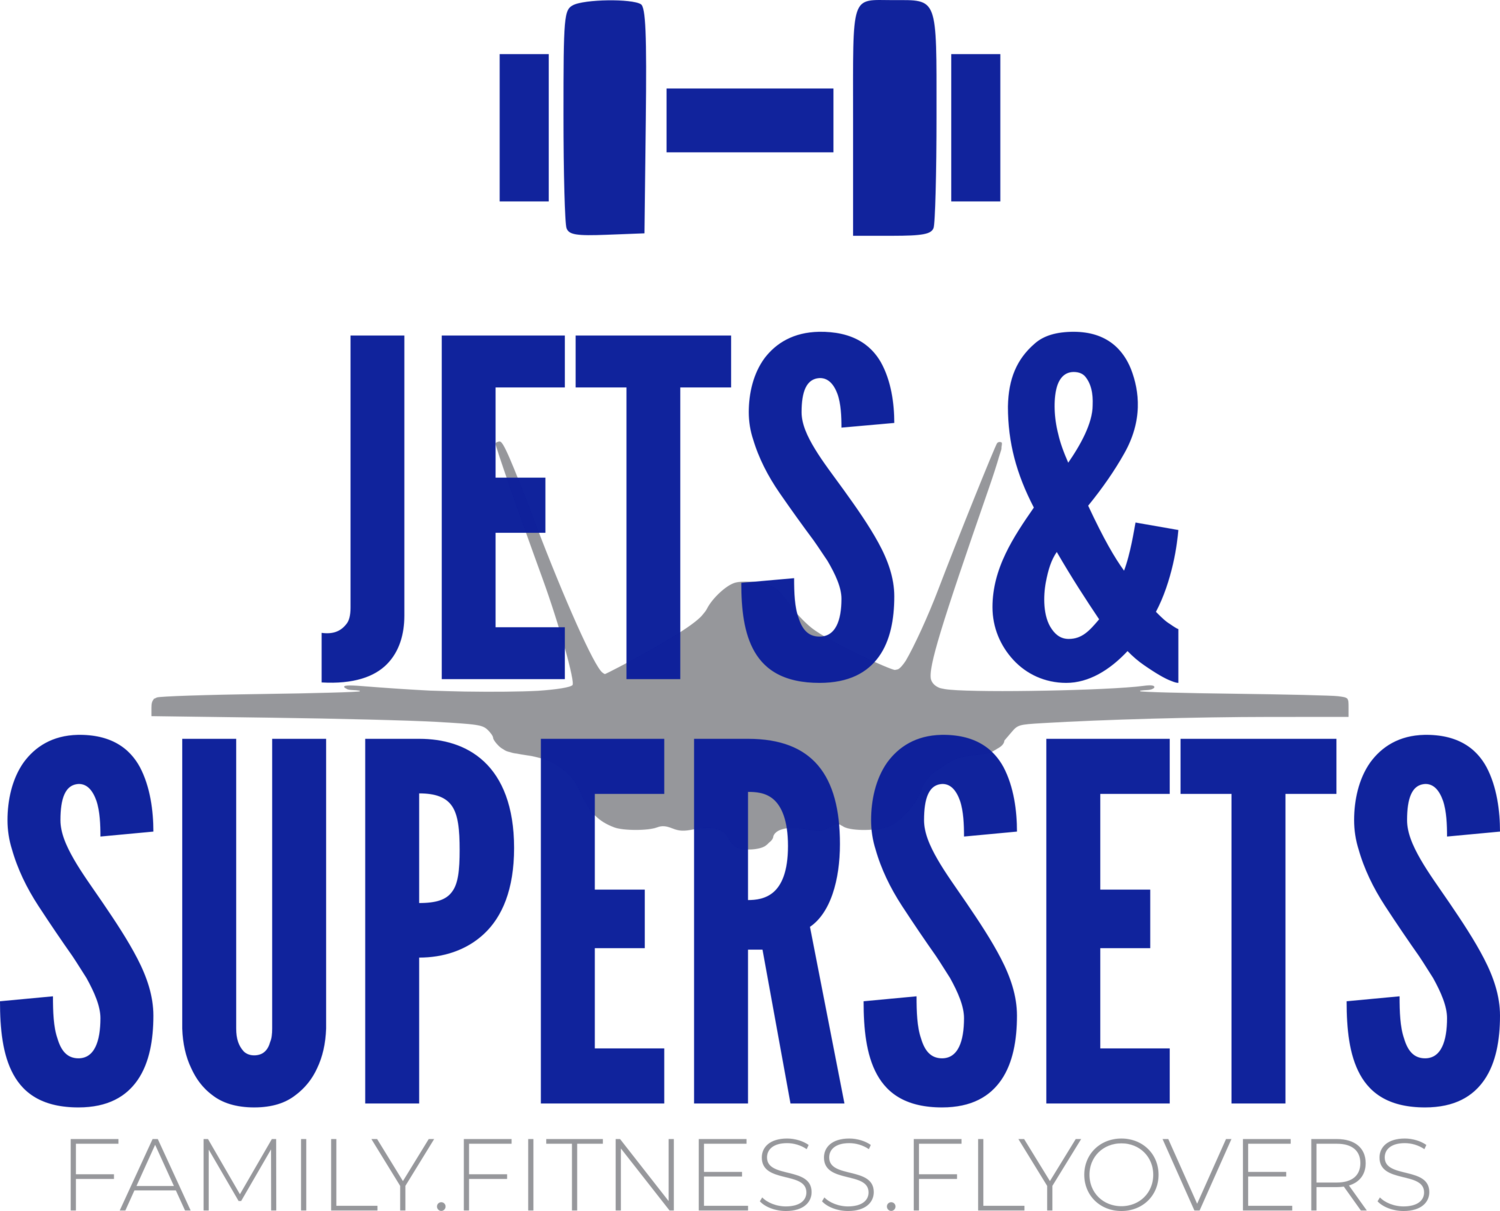 Jets & Supersets